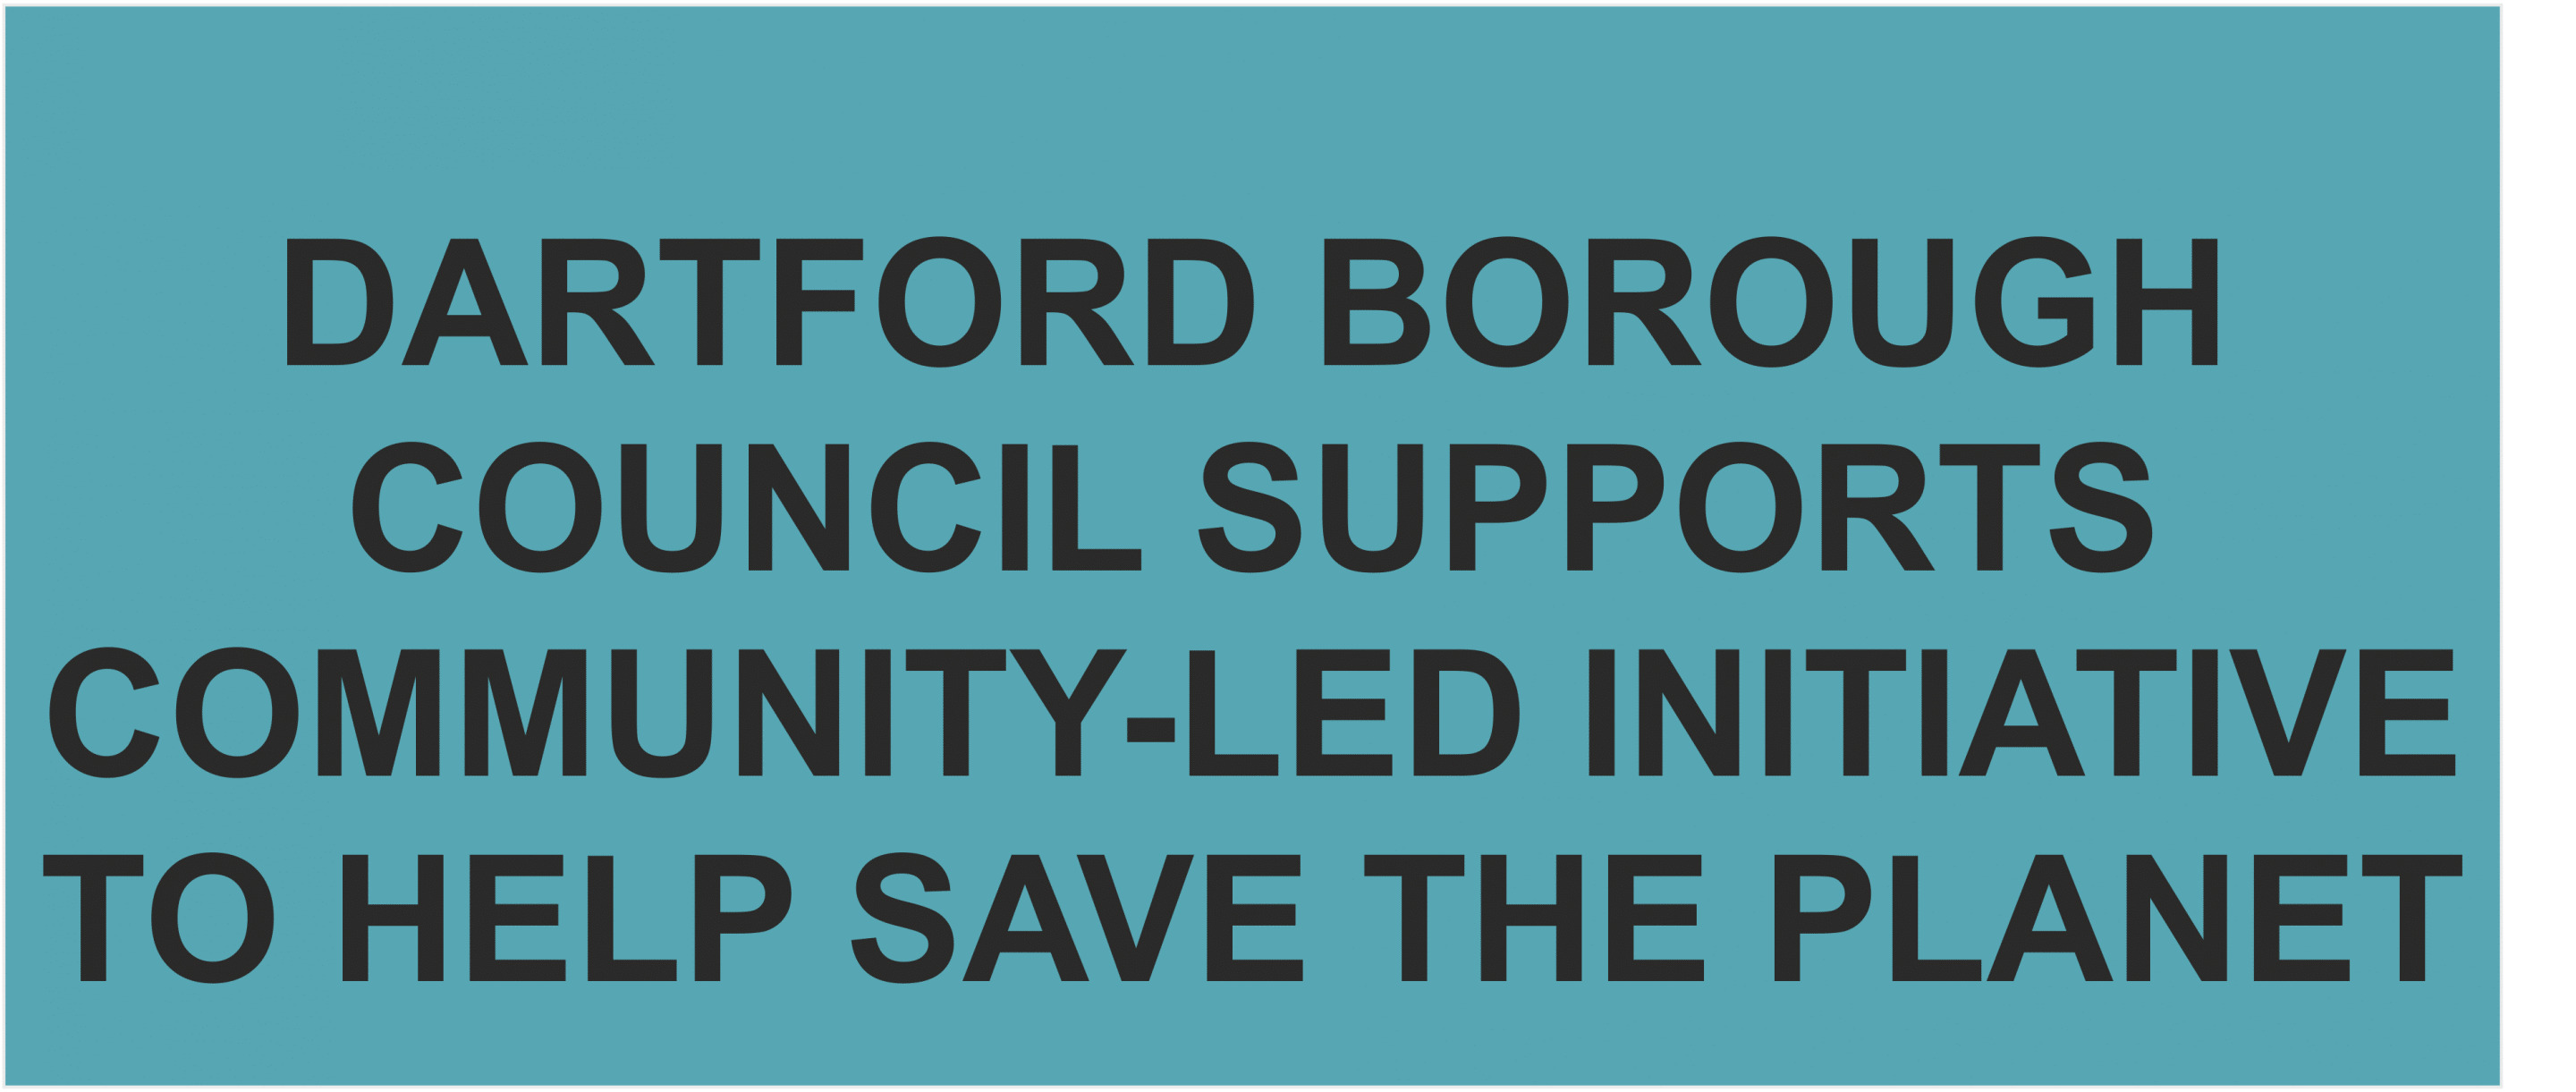 DARTFORD BOROUGH COUNCIL SUPPORTS COMMUNITY-LED INITIATIVE TO HELP SAVE THE PLANET